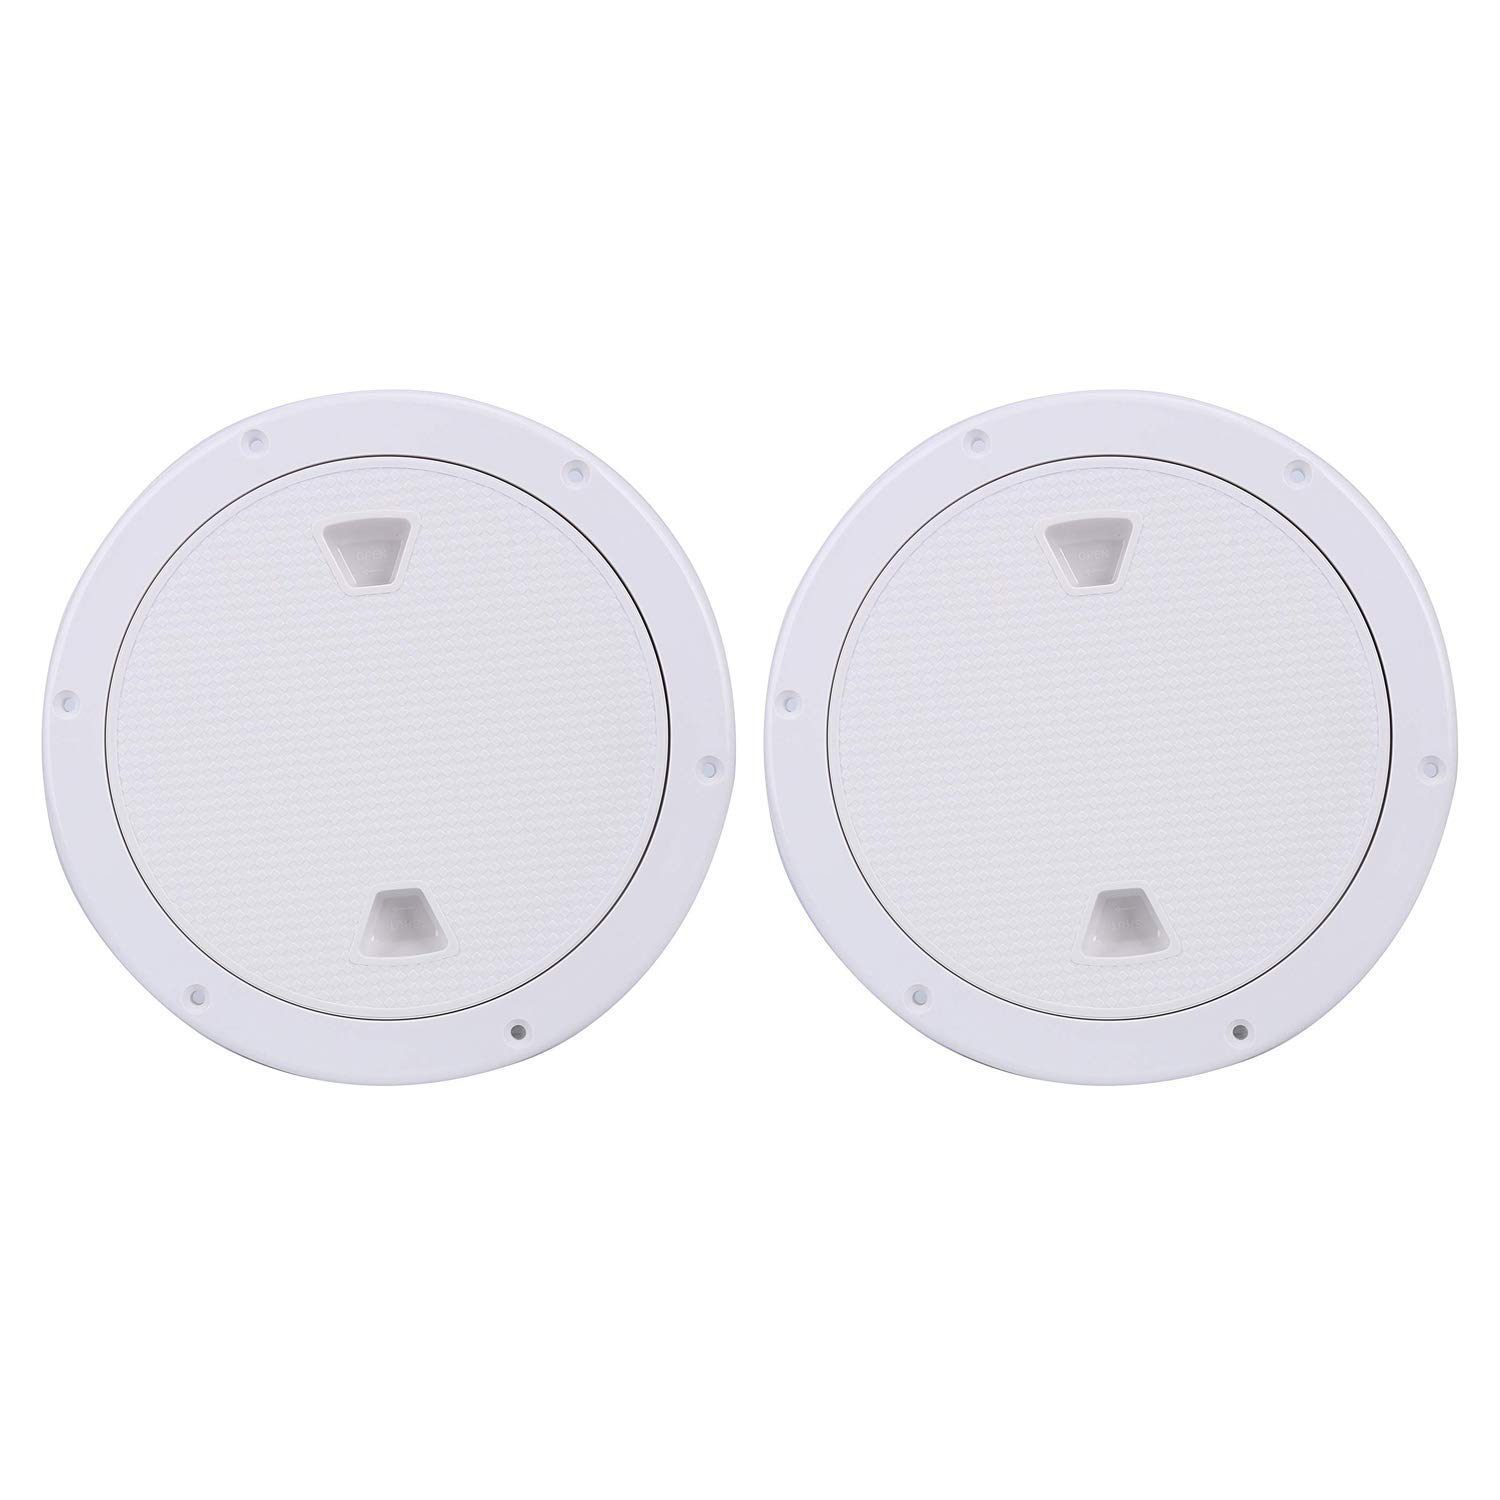 Amarine Made 2 Pack of Boat Round Non Slip Inspection Hatch,Detachable Cover and Pre-drilled Holes in Deck Plate Easily to Install (White, Opening Dia: 7'') by Amarine Made